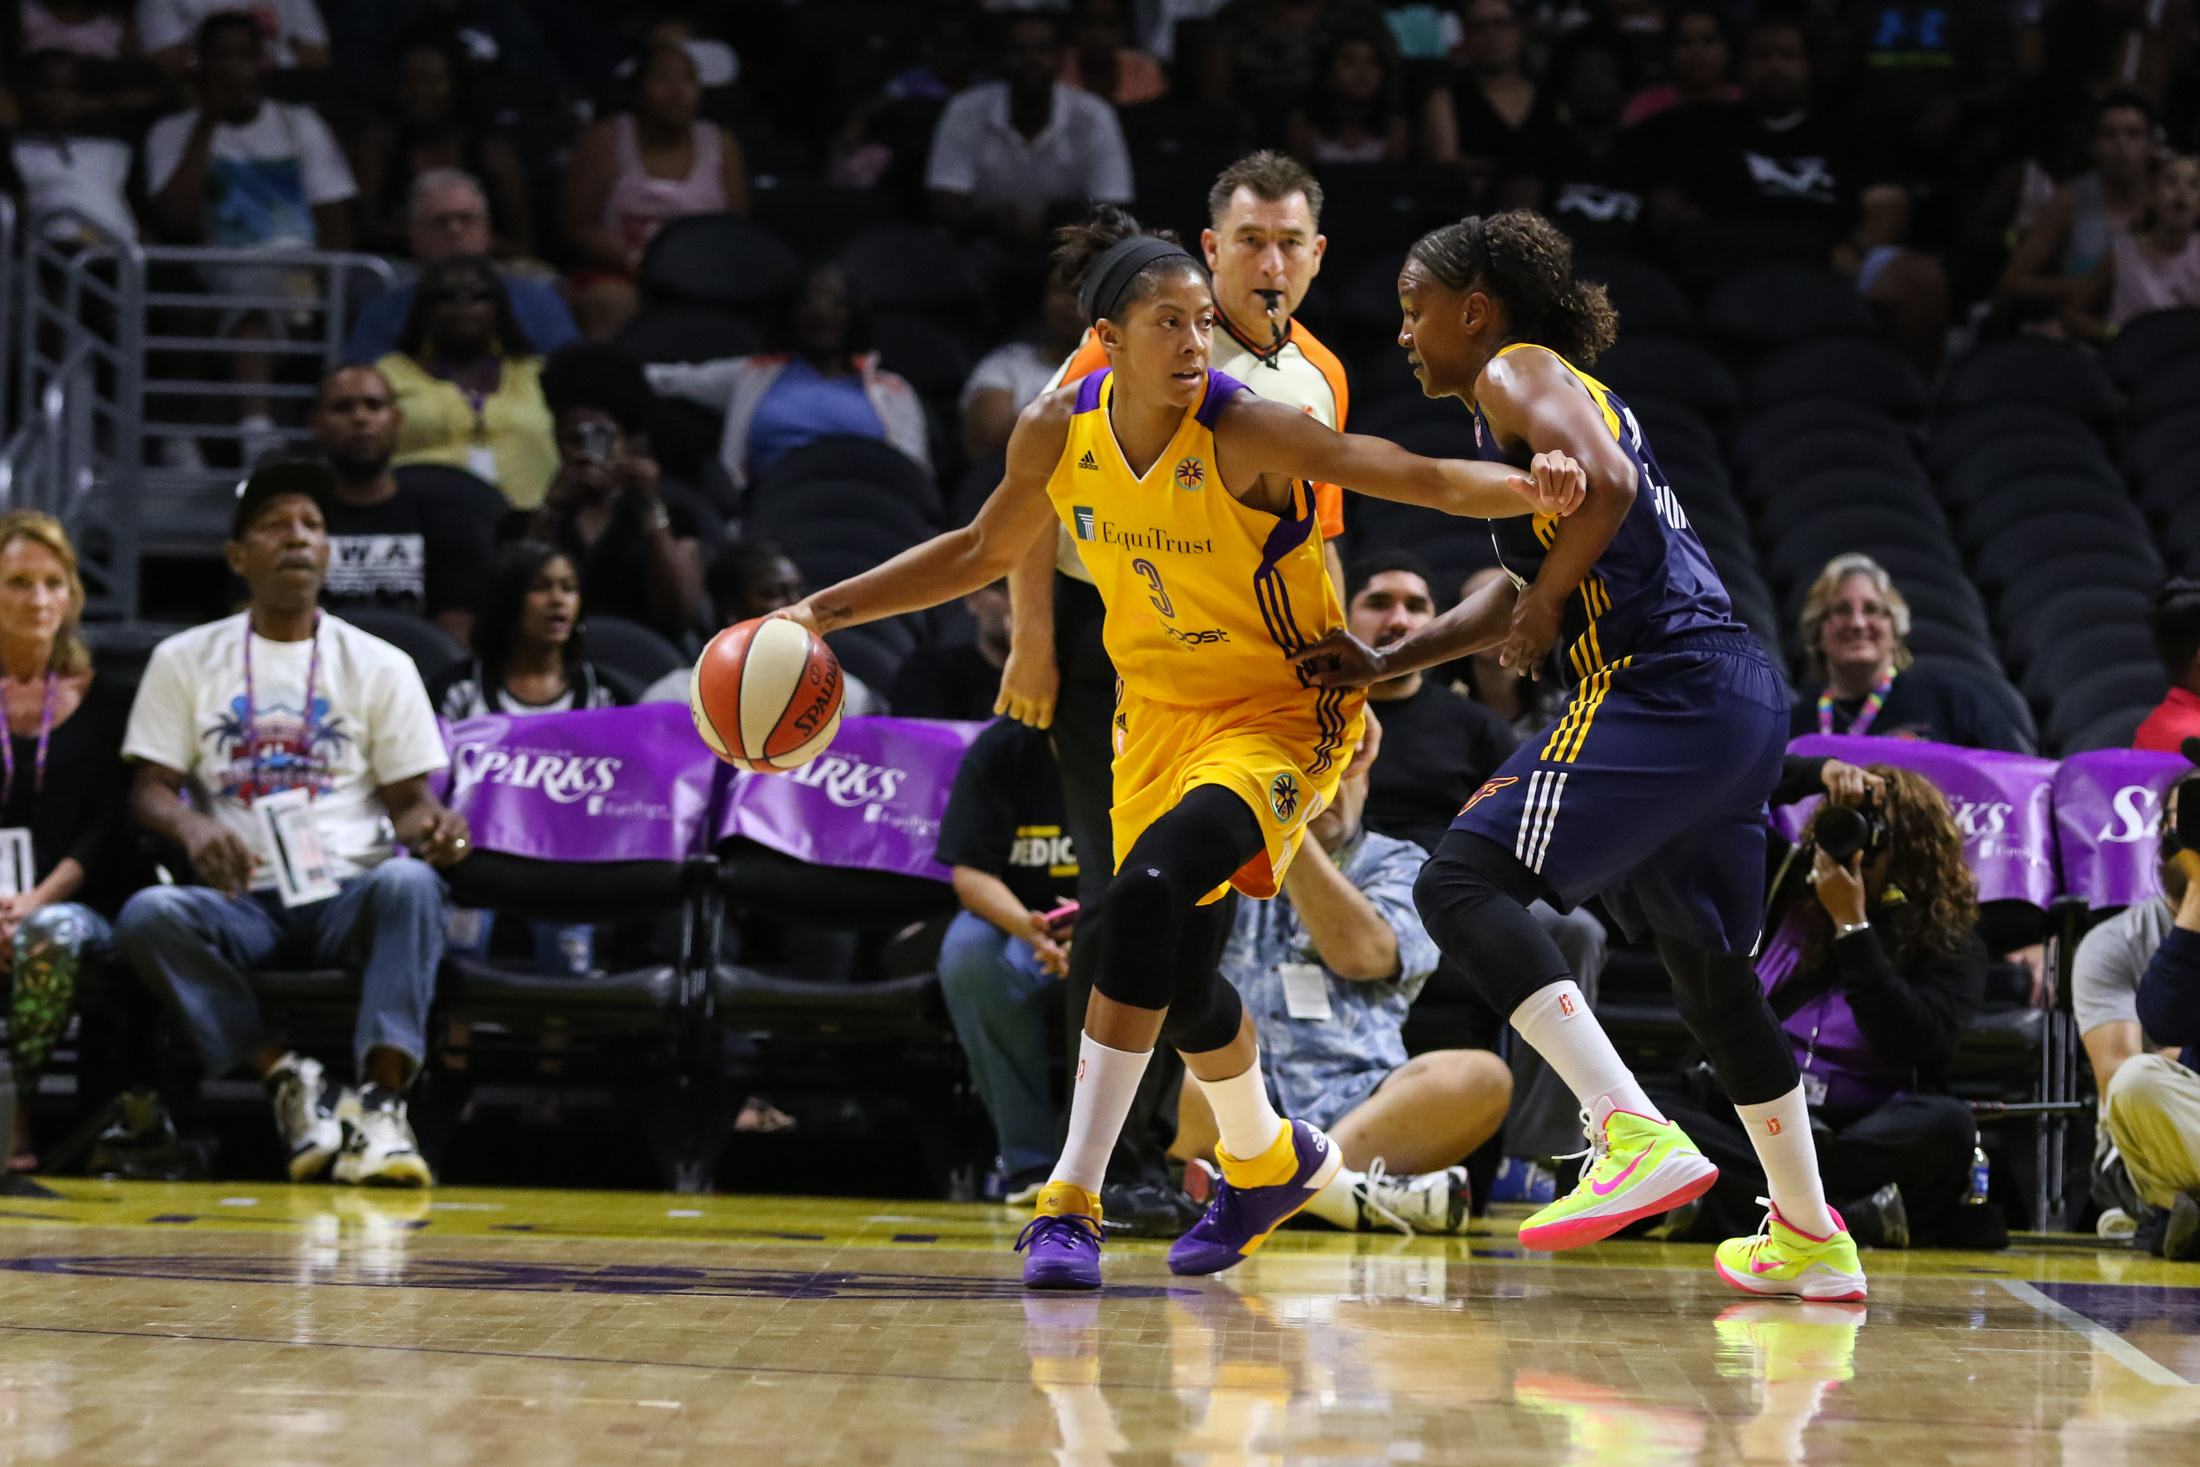 Candace Parker backing down Tamika Catchings